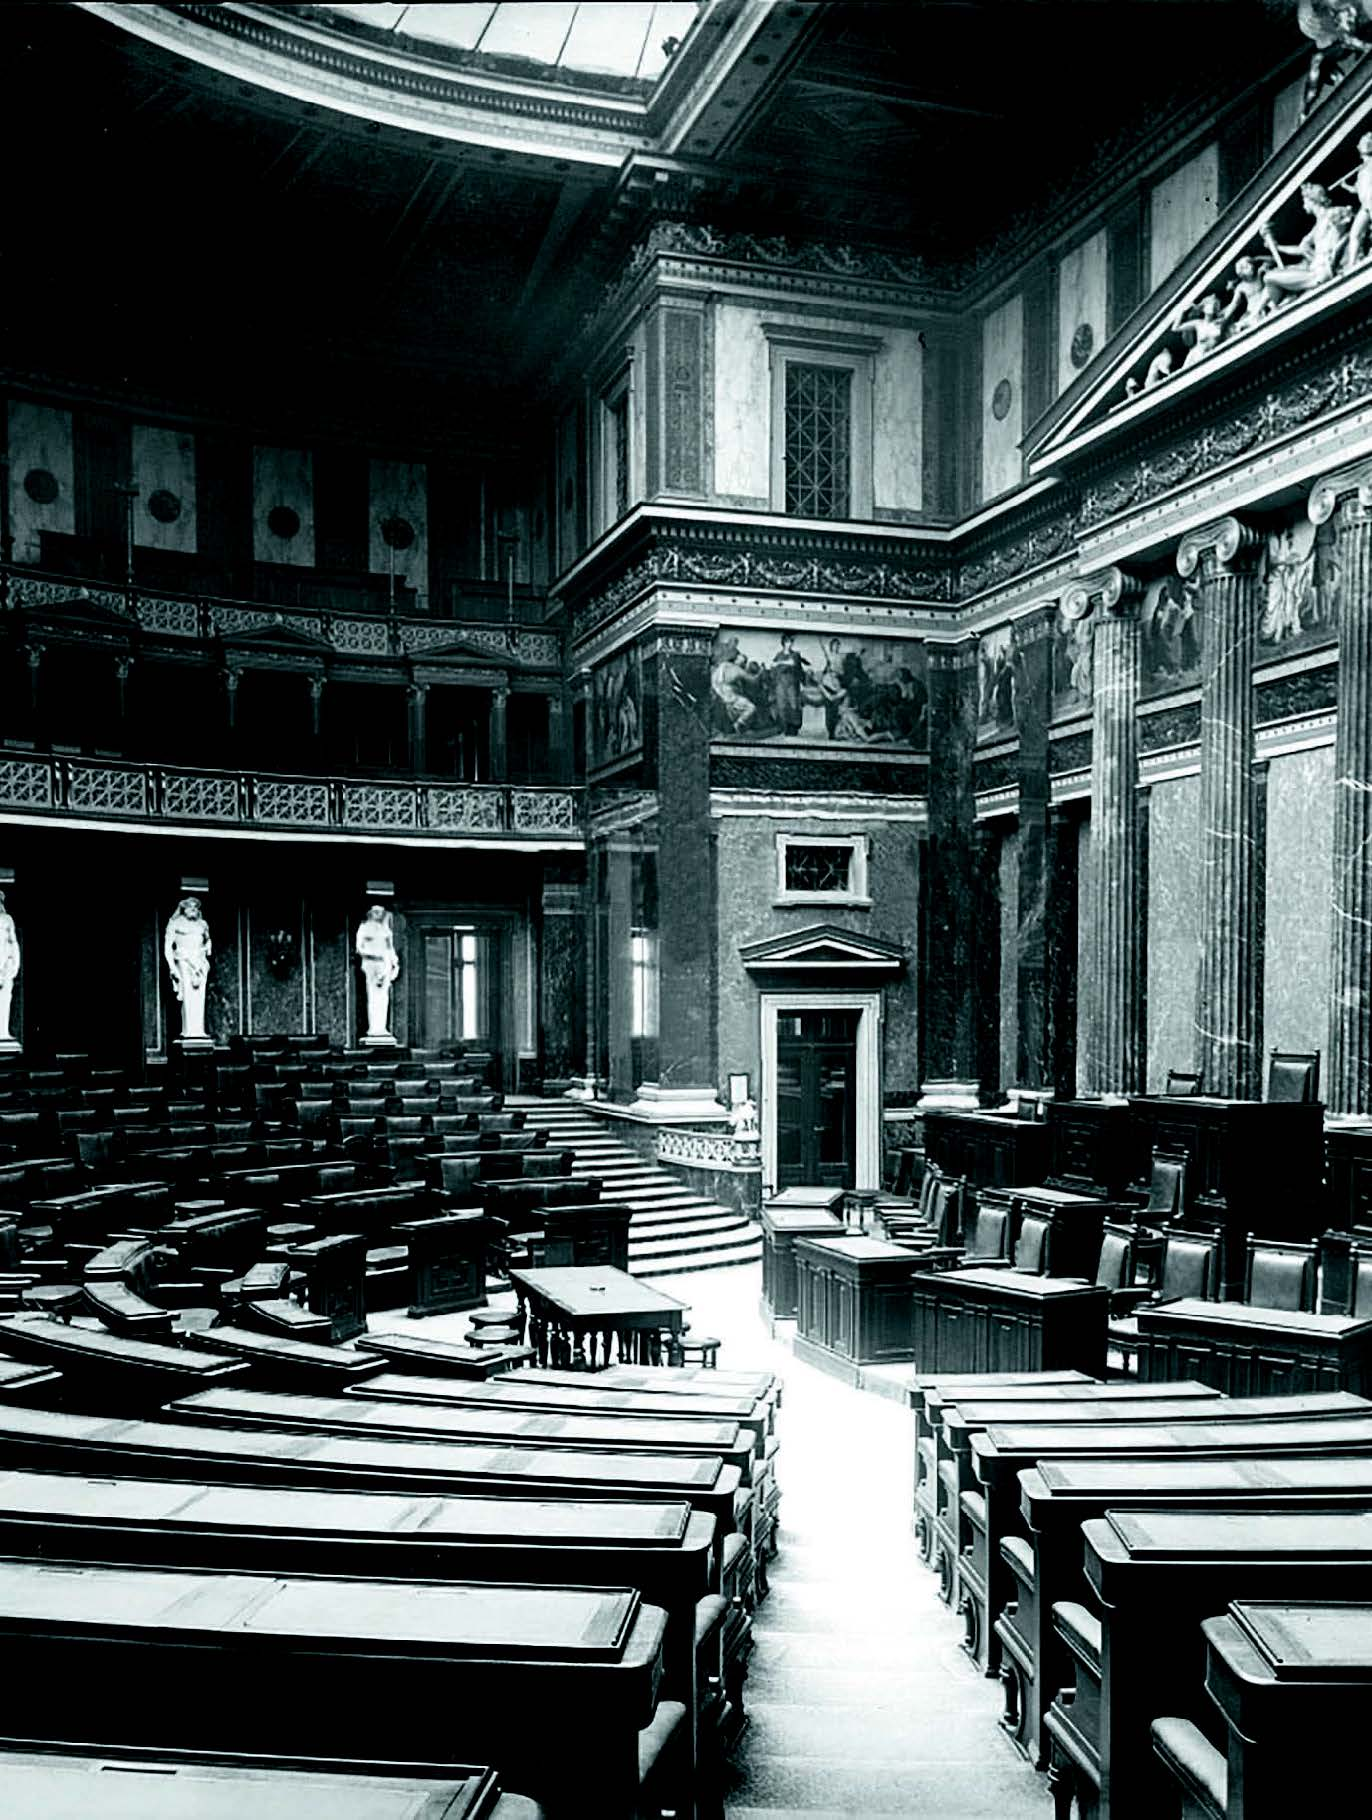 Assembly Hall of the Reichsrat, 1902. Austrian National Library